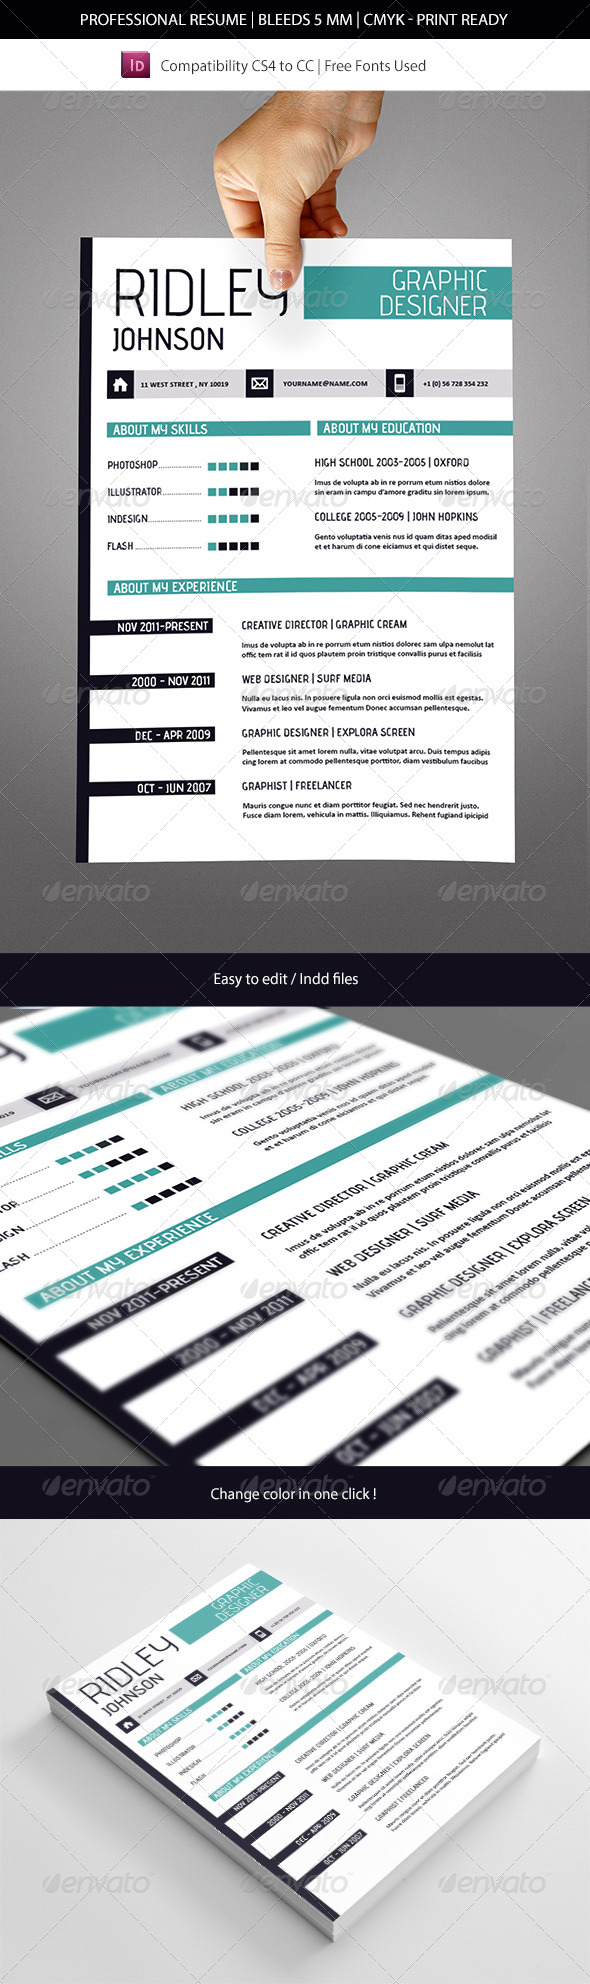 Creative Indesign Resume Template - Resumes Stationery